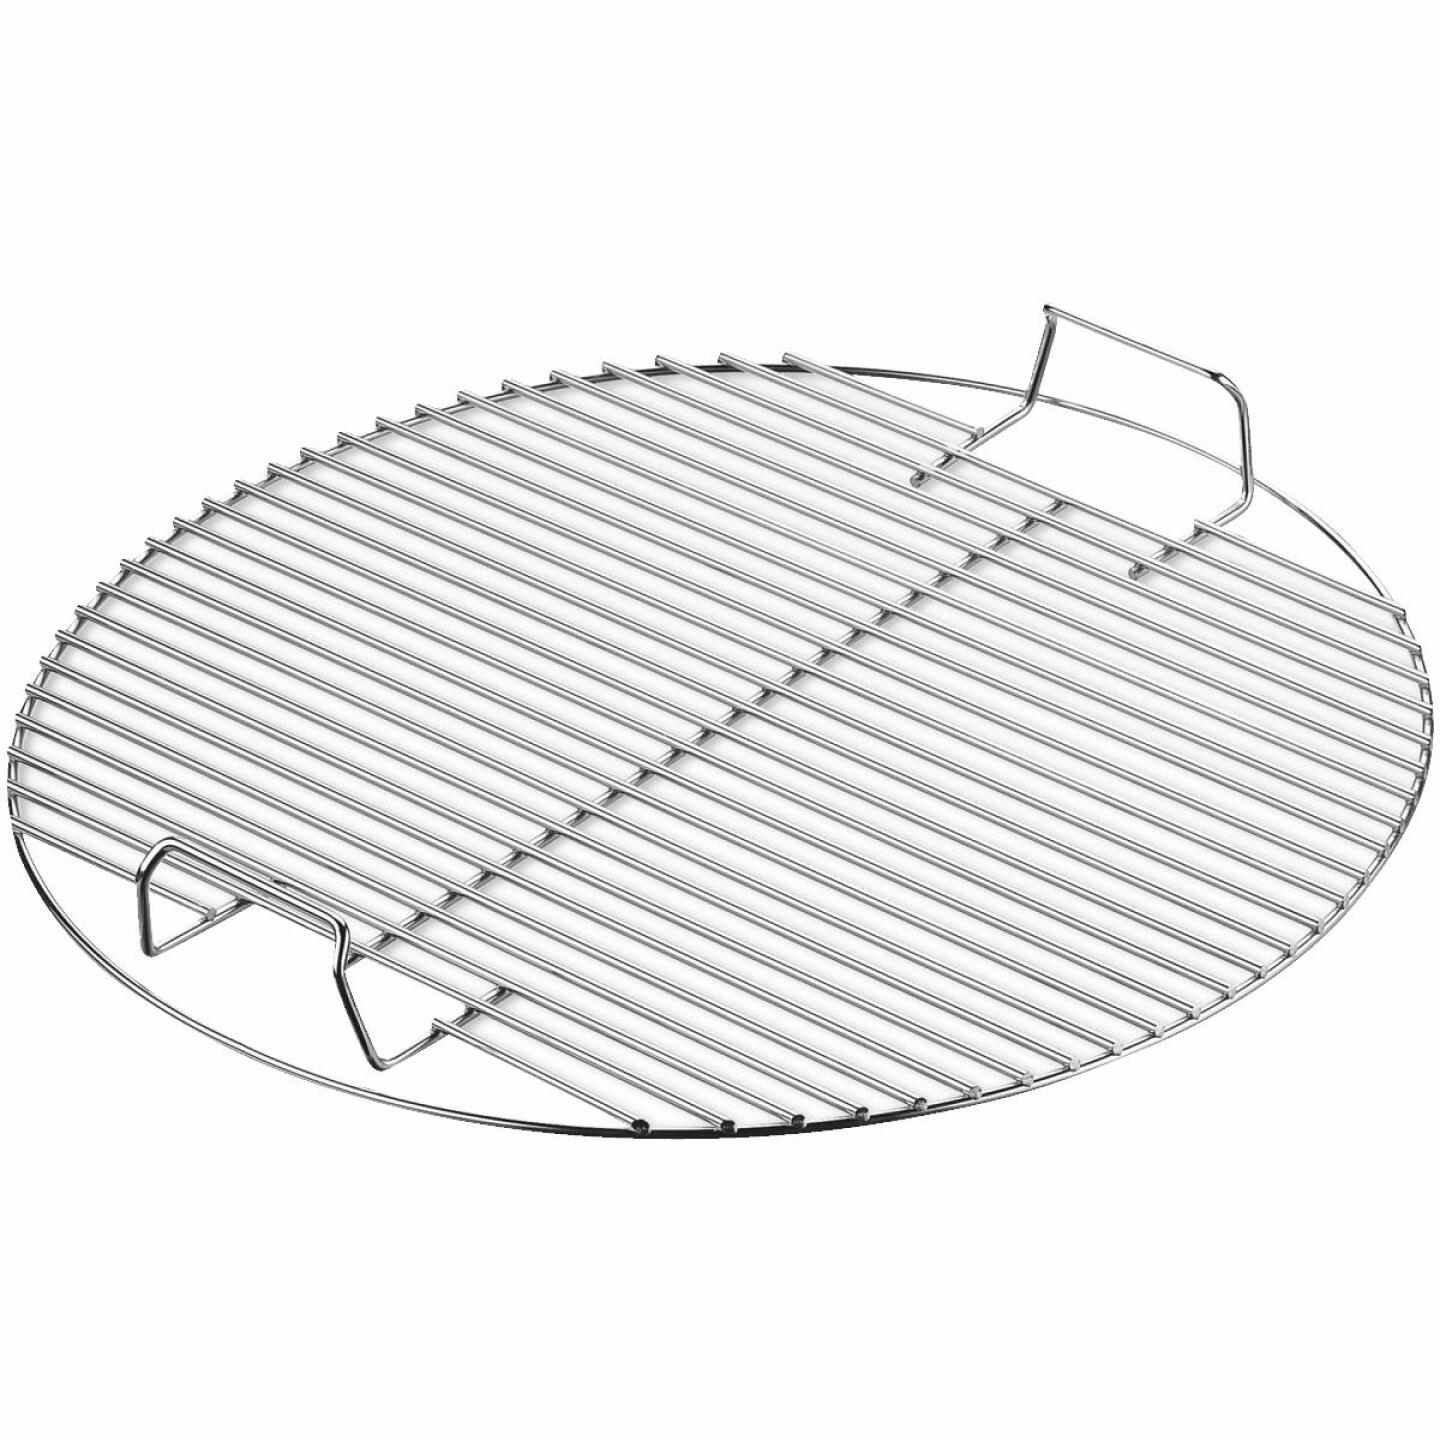 Weber 18.5 In. Dia. Plated-Steel Kettle Grill Grate Image 1